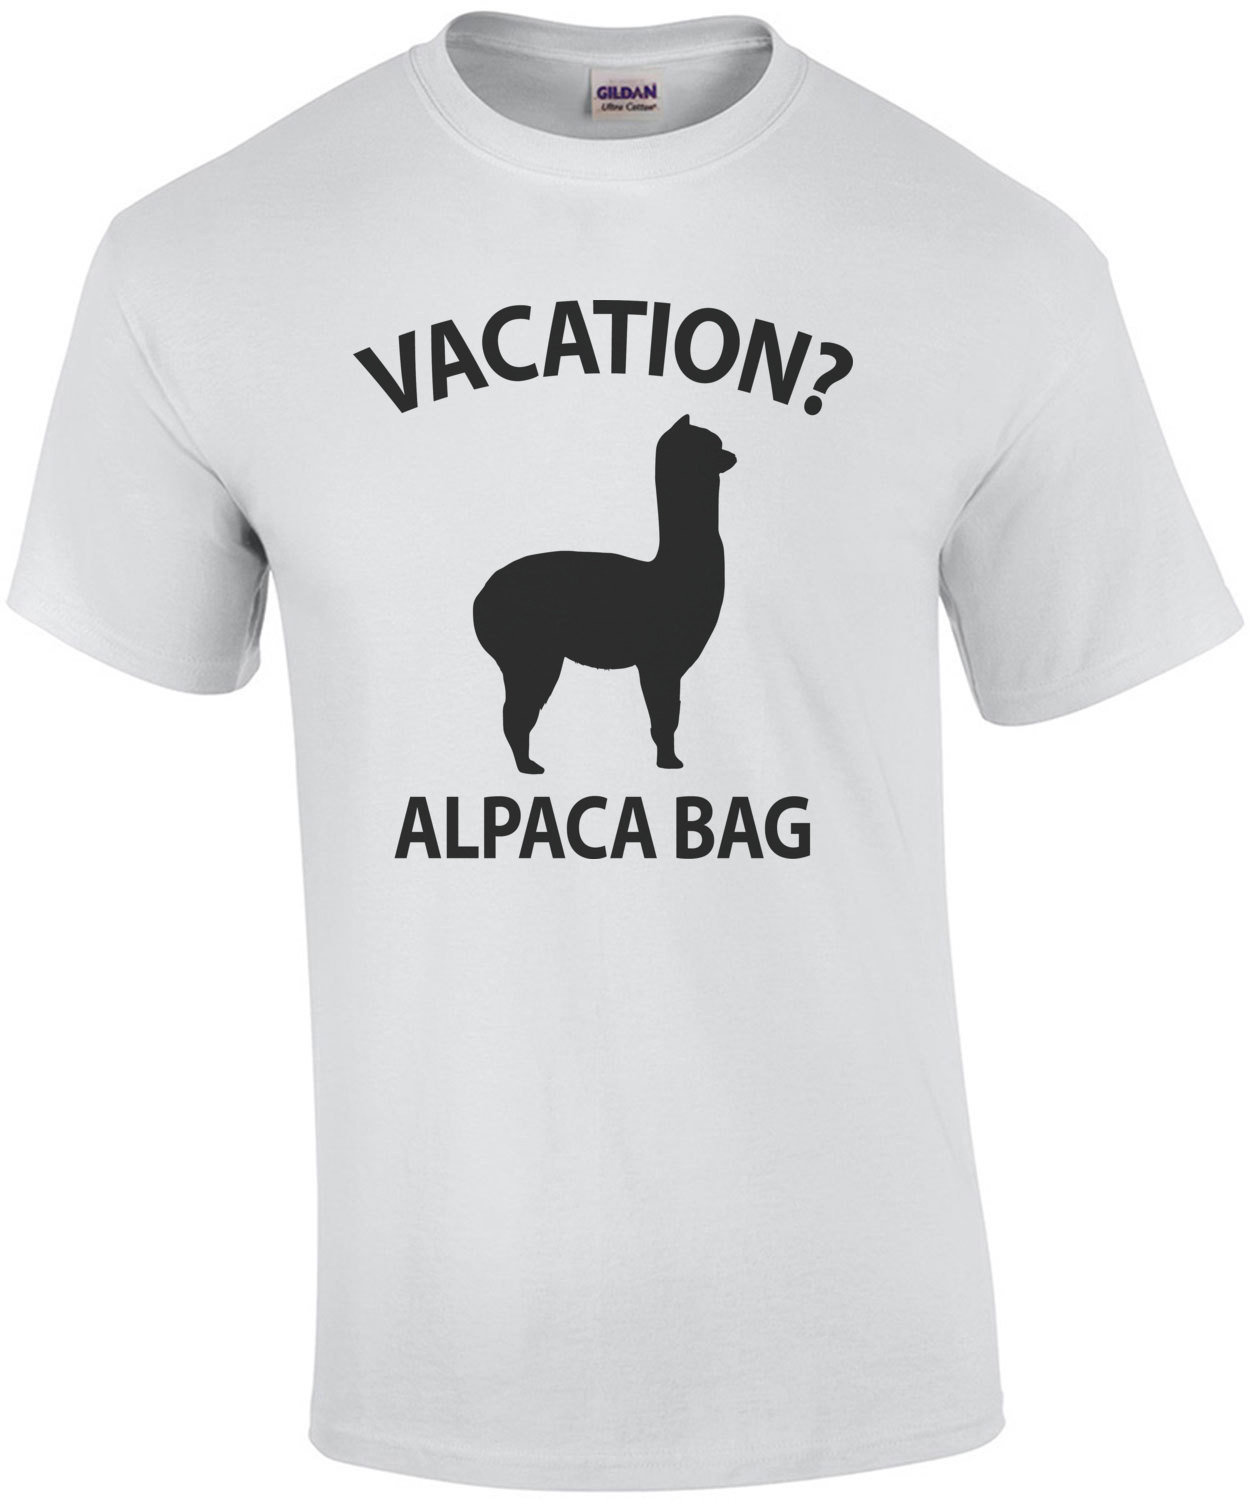 Vacation? Alpaca Bag - Funny Pun T-Shirt